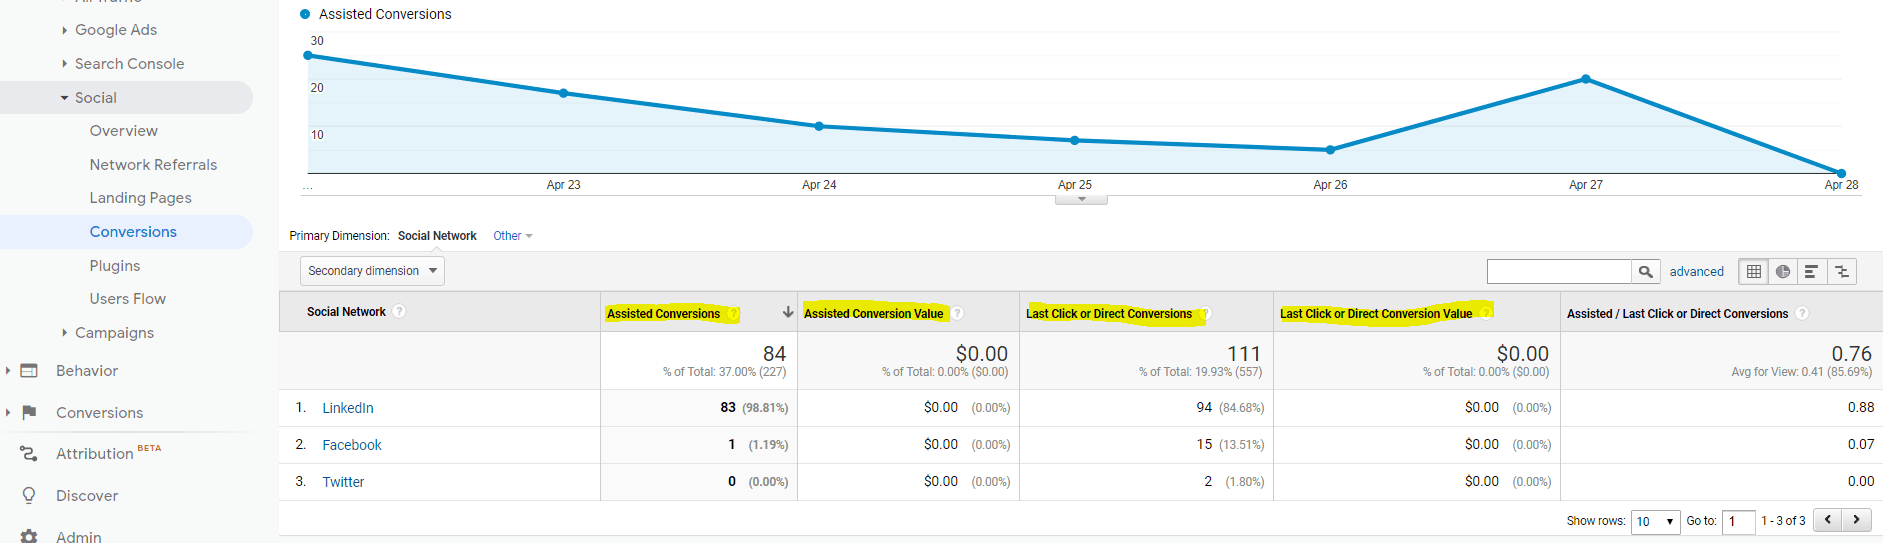 Social Media Conversions Tracking Within Google Analytics Showing Assisted & Last Click